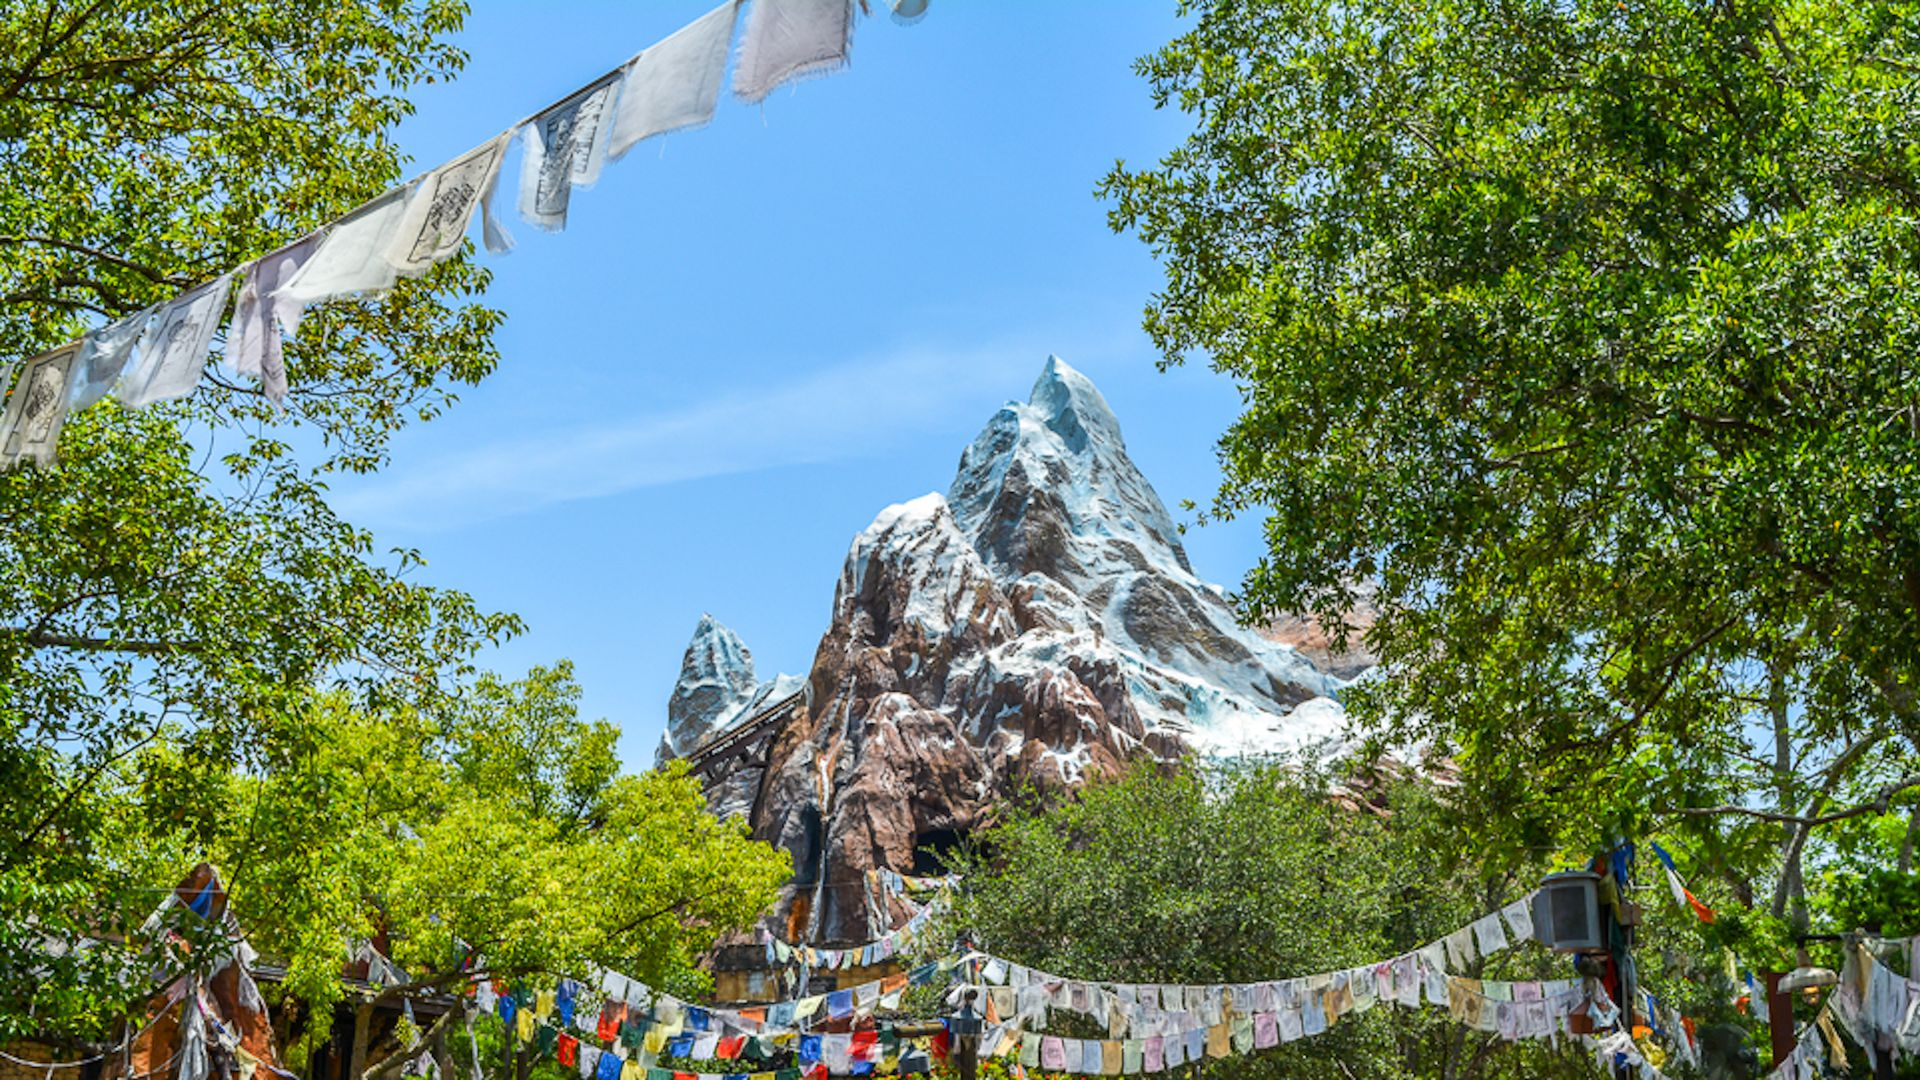 A photo of Disney's Everest roller coaster.